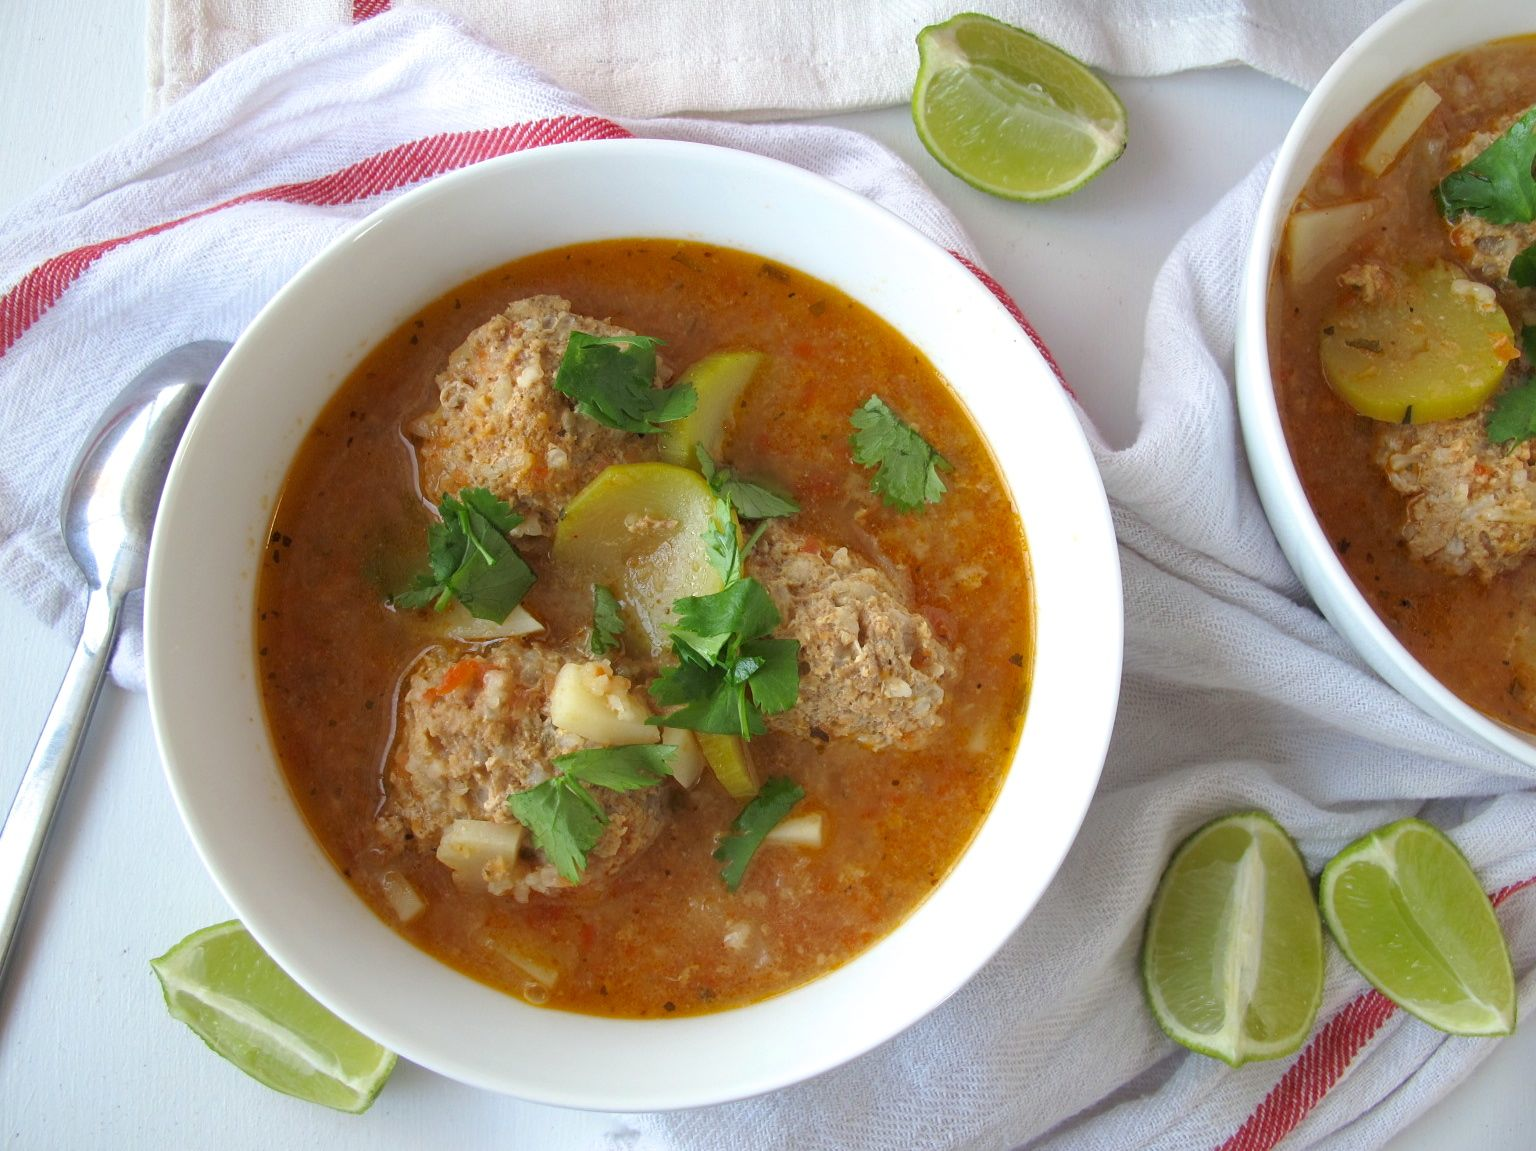 ... mexican meatball mexican turkey meatball soup beef or turkey meatballs